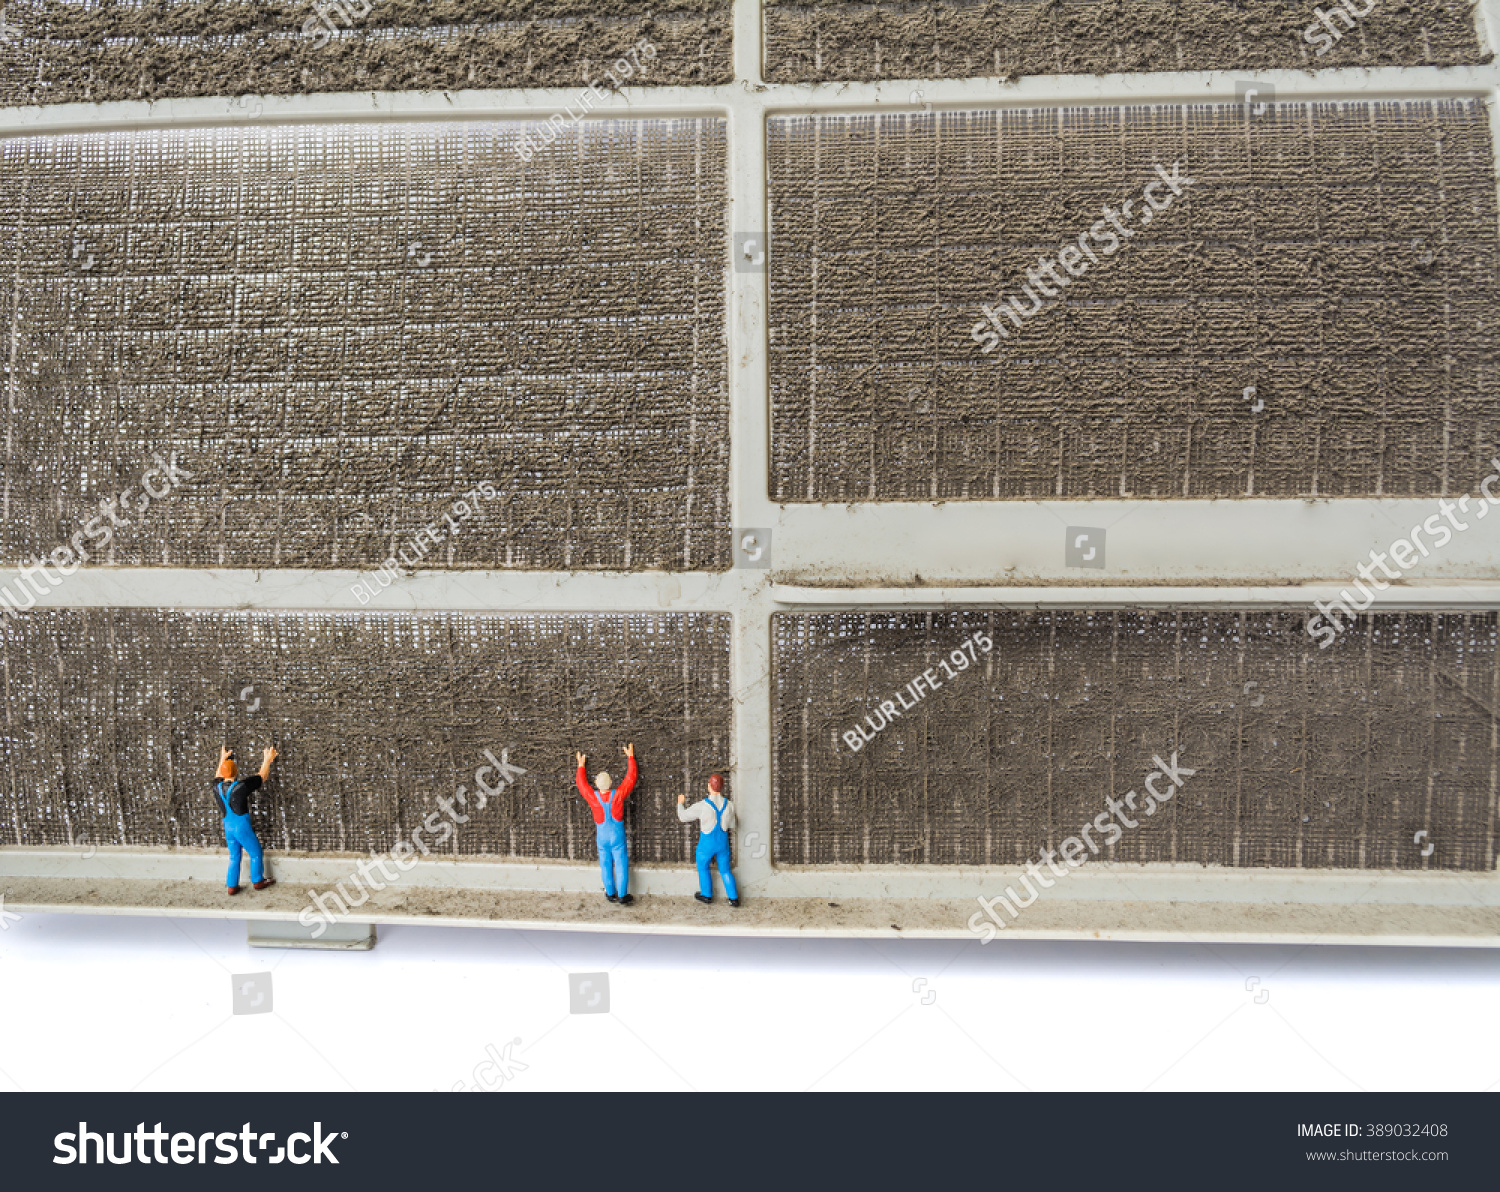 image of dirty air filter from air conditioner and small dolls try to clean  it (